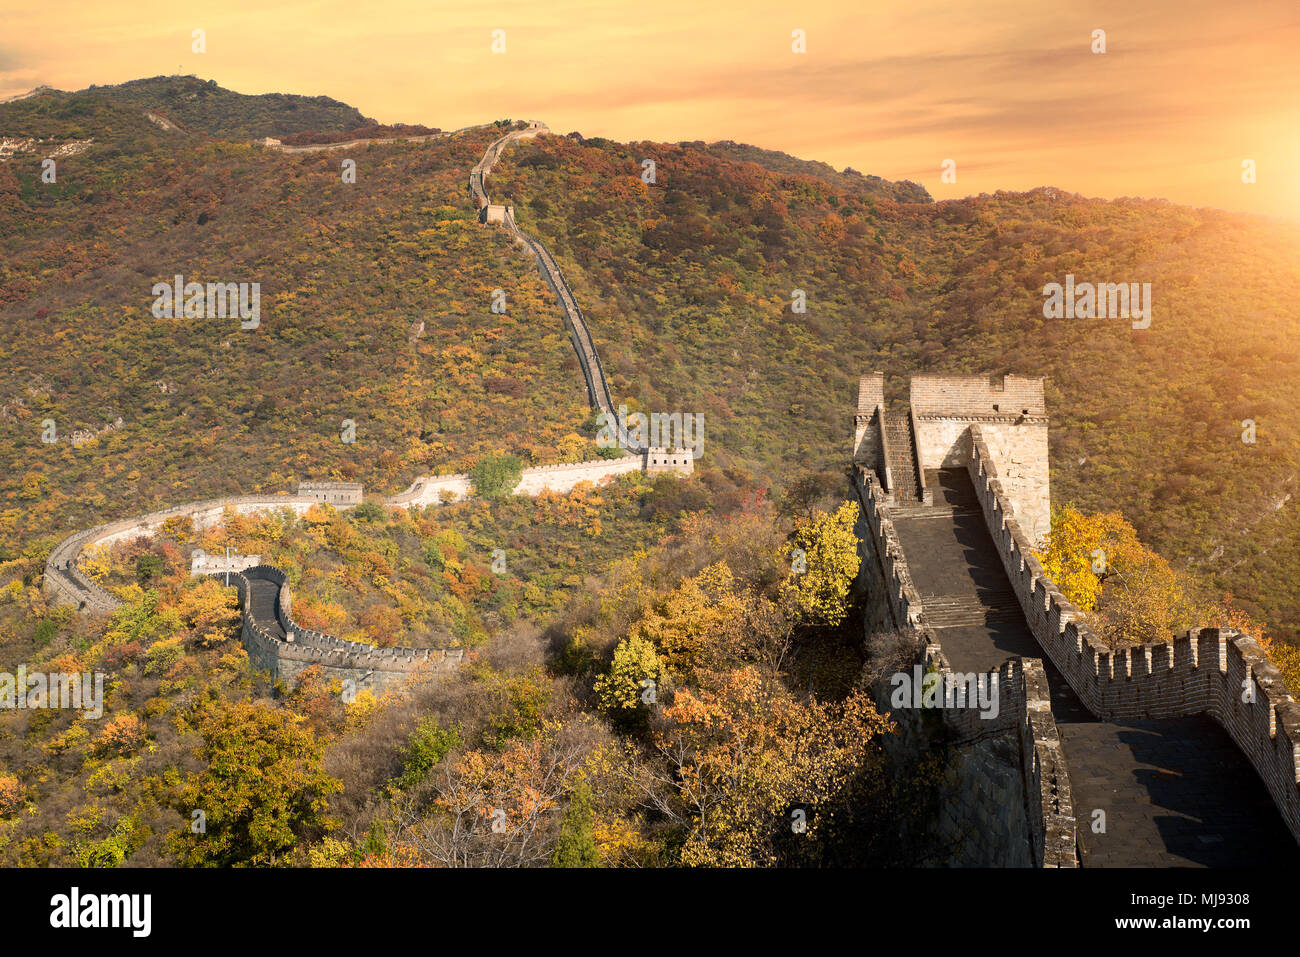 China The great wall distant view compressed towers and wall segments autumn season in mountains near Beijing ancient chinese fortification military l - Stock Image